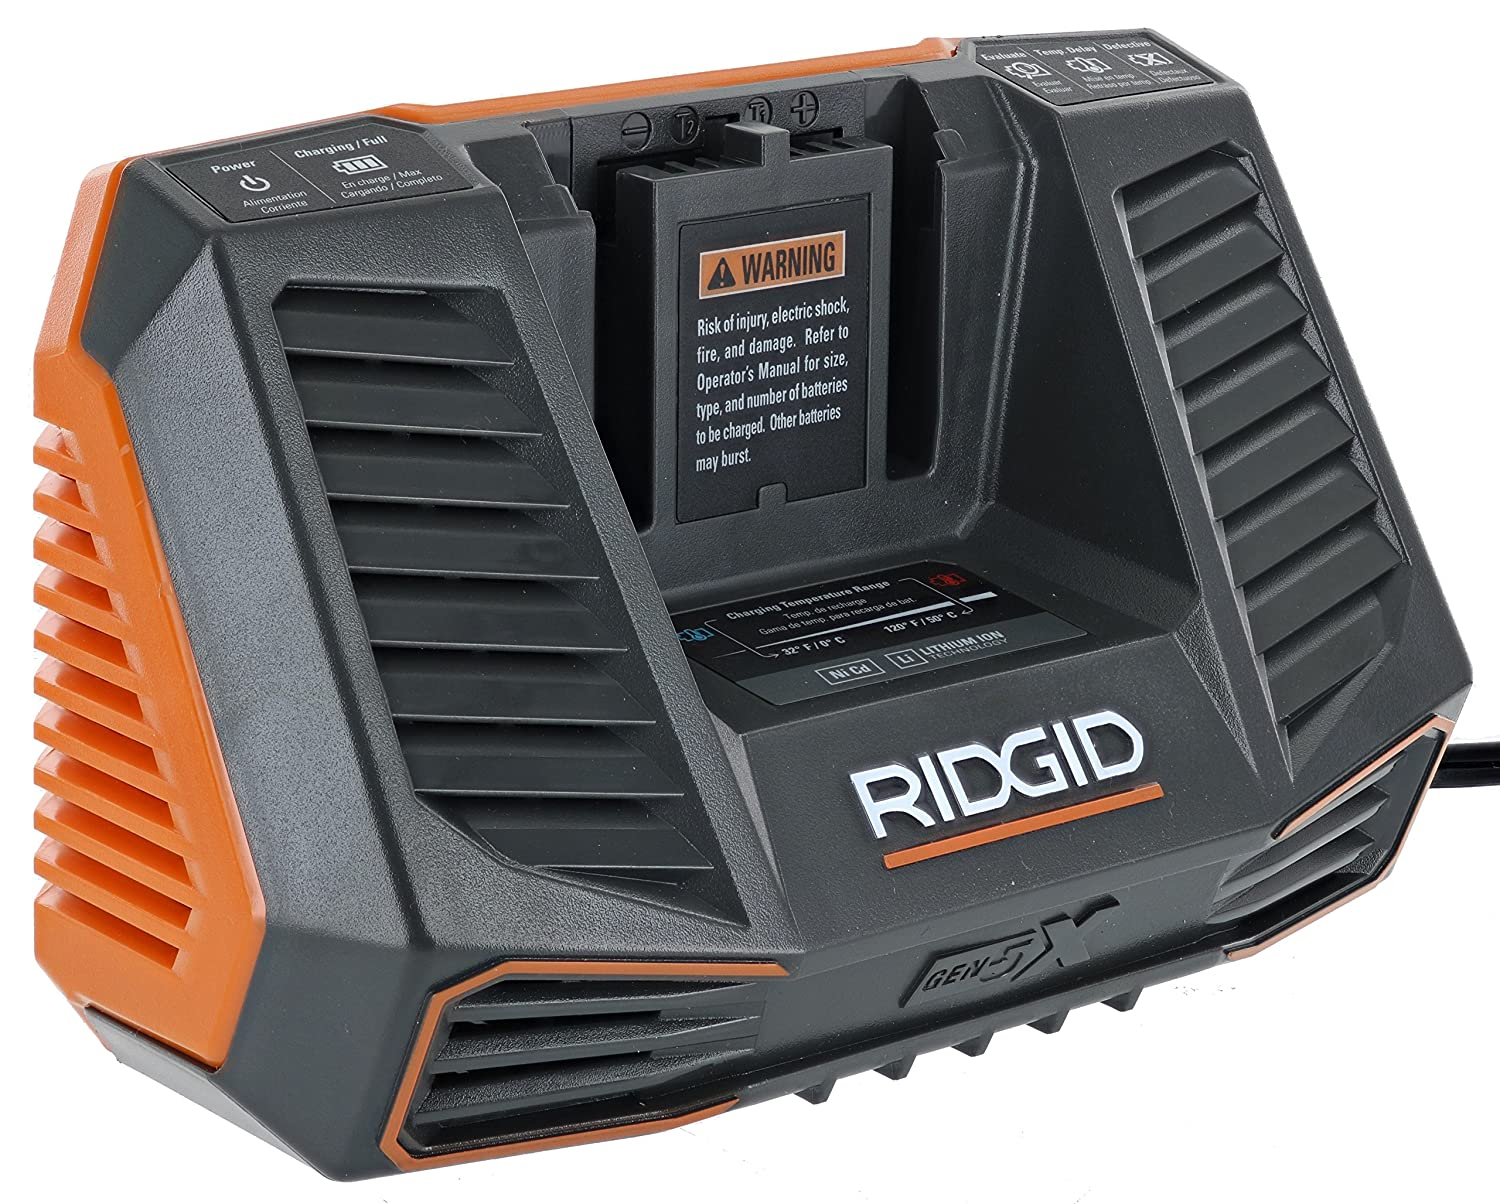 Ridgid R840095 Gen5X Genuine OEM Dual Chemistry Battery Charger for 18V lithium ion or NiCad batteries with Temperature Monitoring and Energy Saving ...